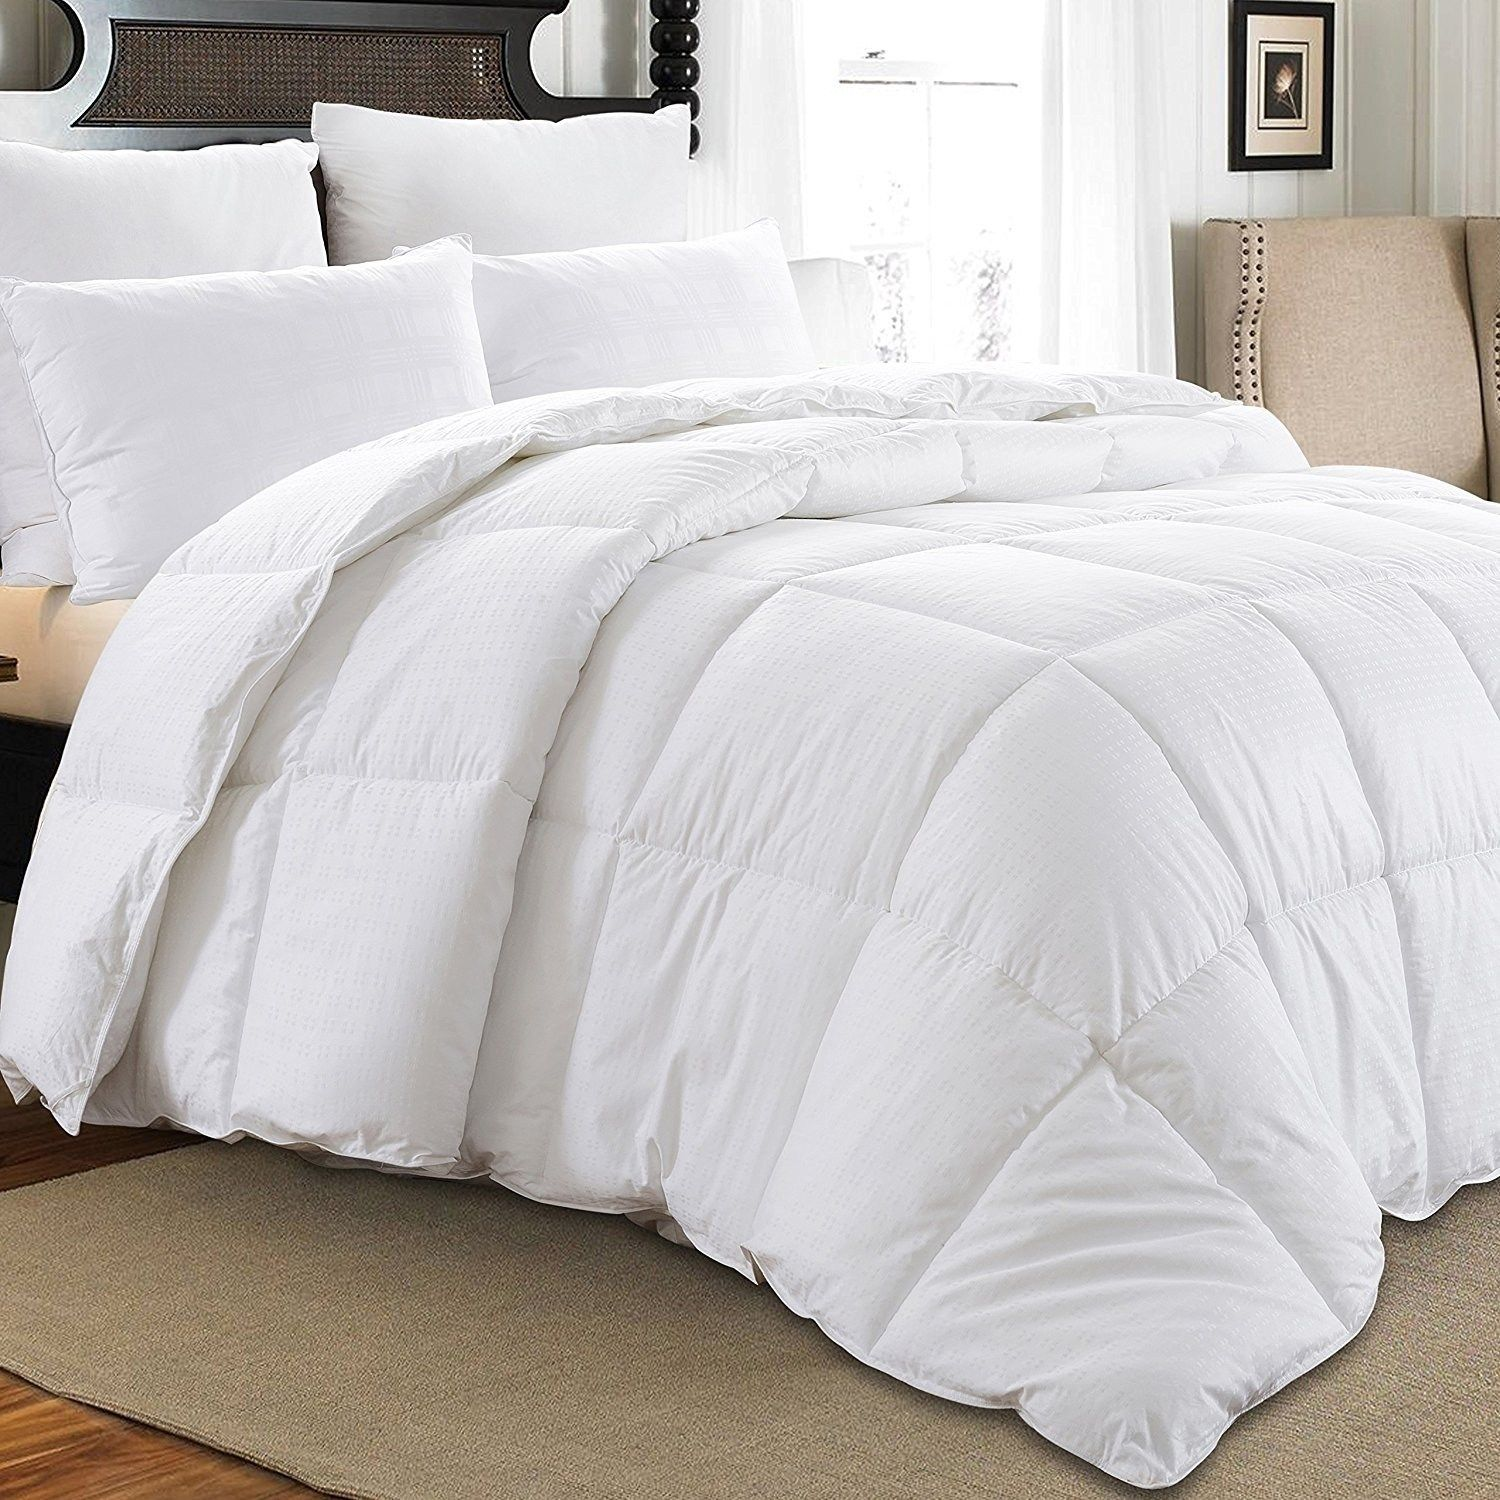 Downluxe Hypoallergenic 350 Thread Count 100 Cotton Shell Down Proof 600 Fill Power All Seasons Baffle Box White Down Comforter Down Comforter Comforters White Down Comforter